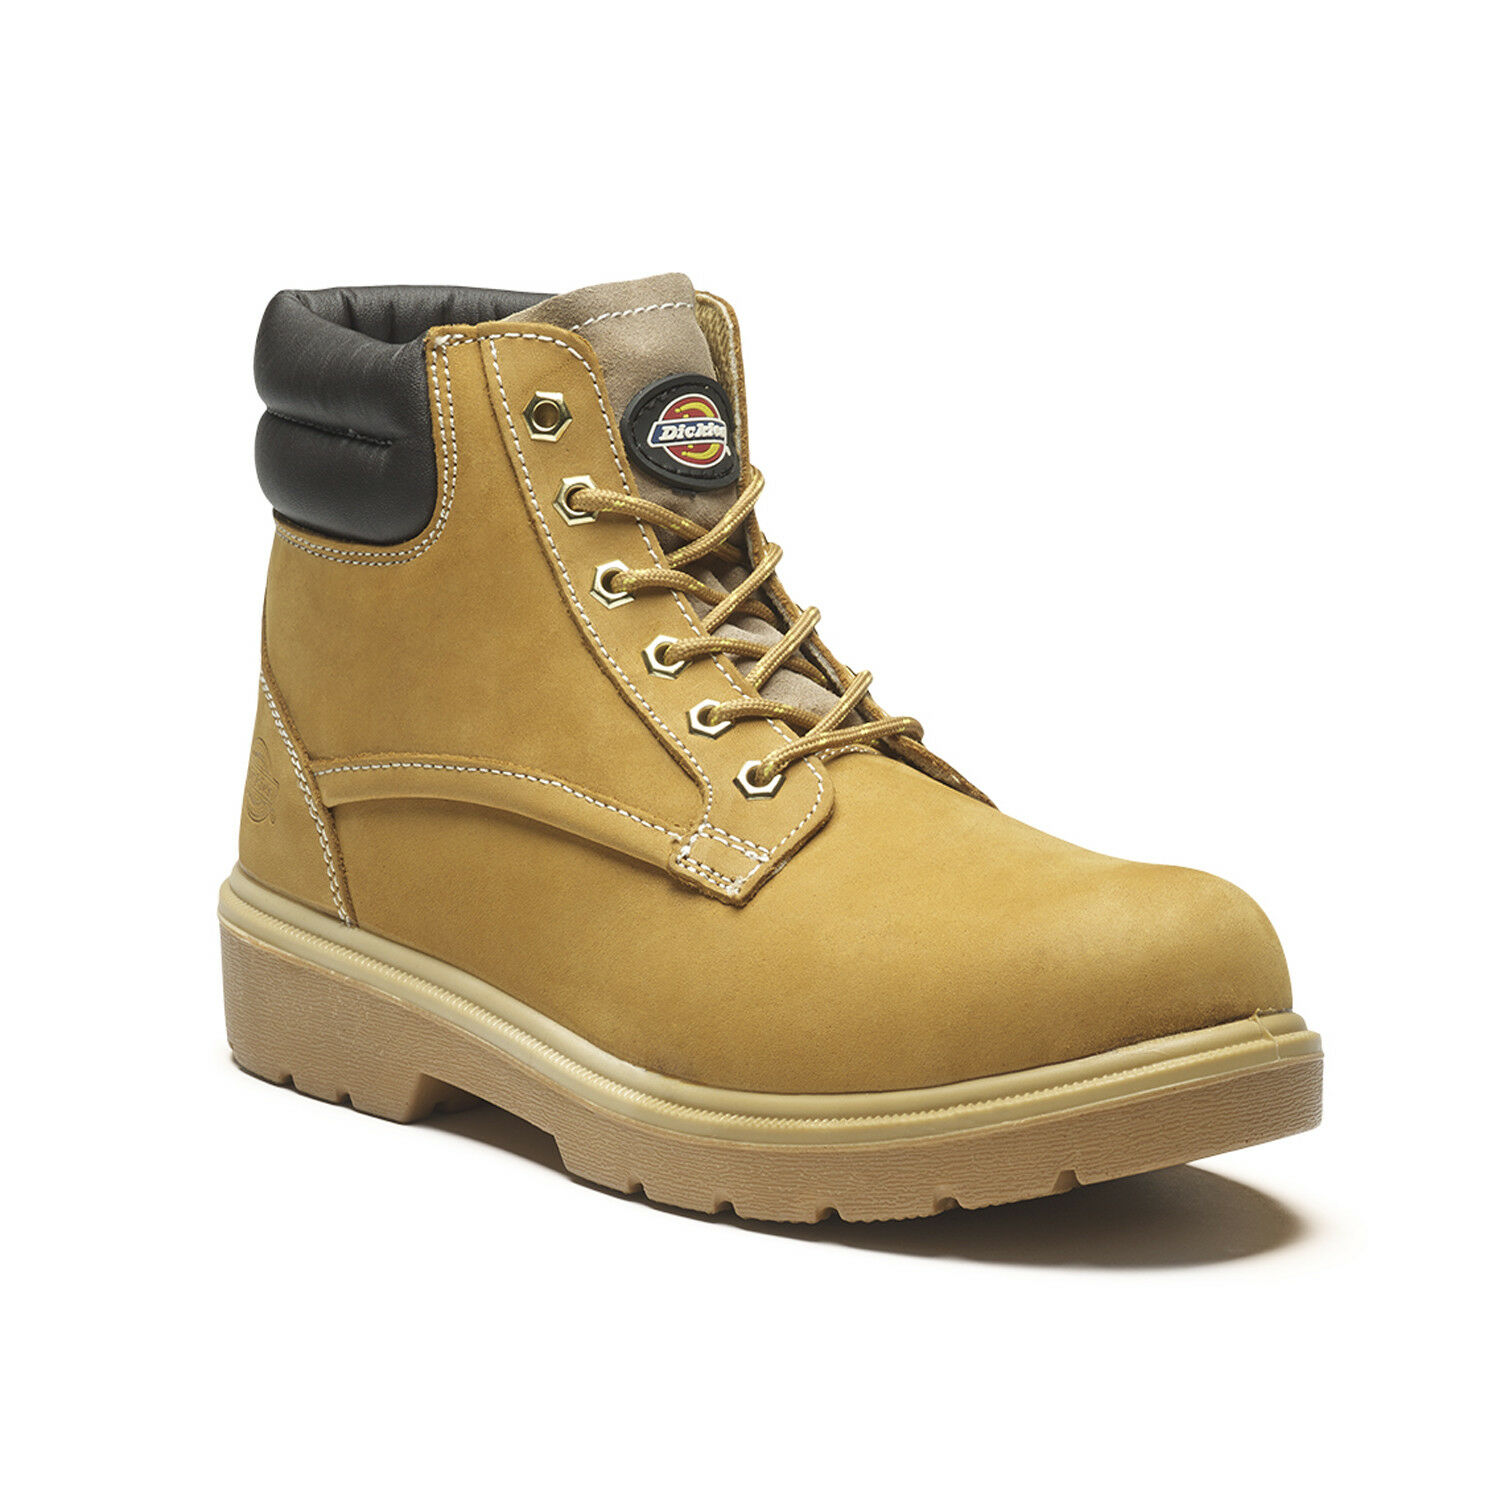 Dickies Donegal Safety Work Boots Tan Honey (Sizes 3-12) Men's shoes